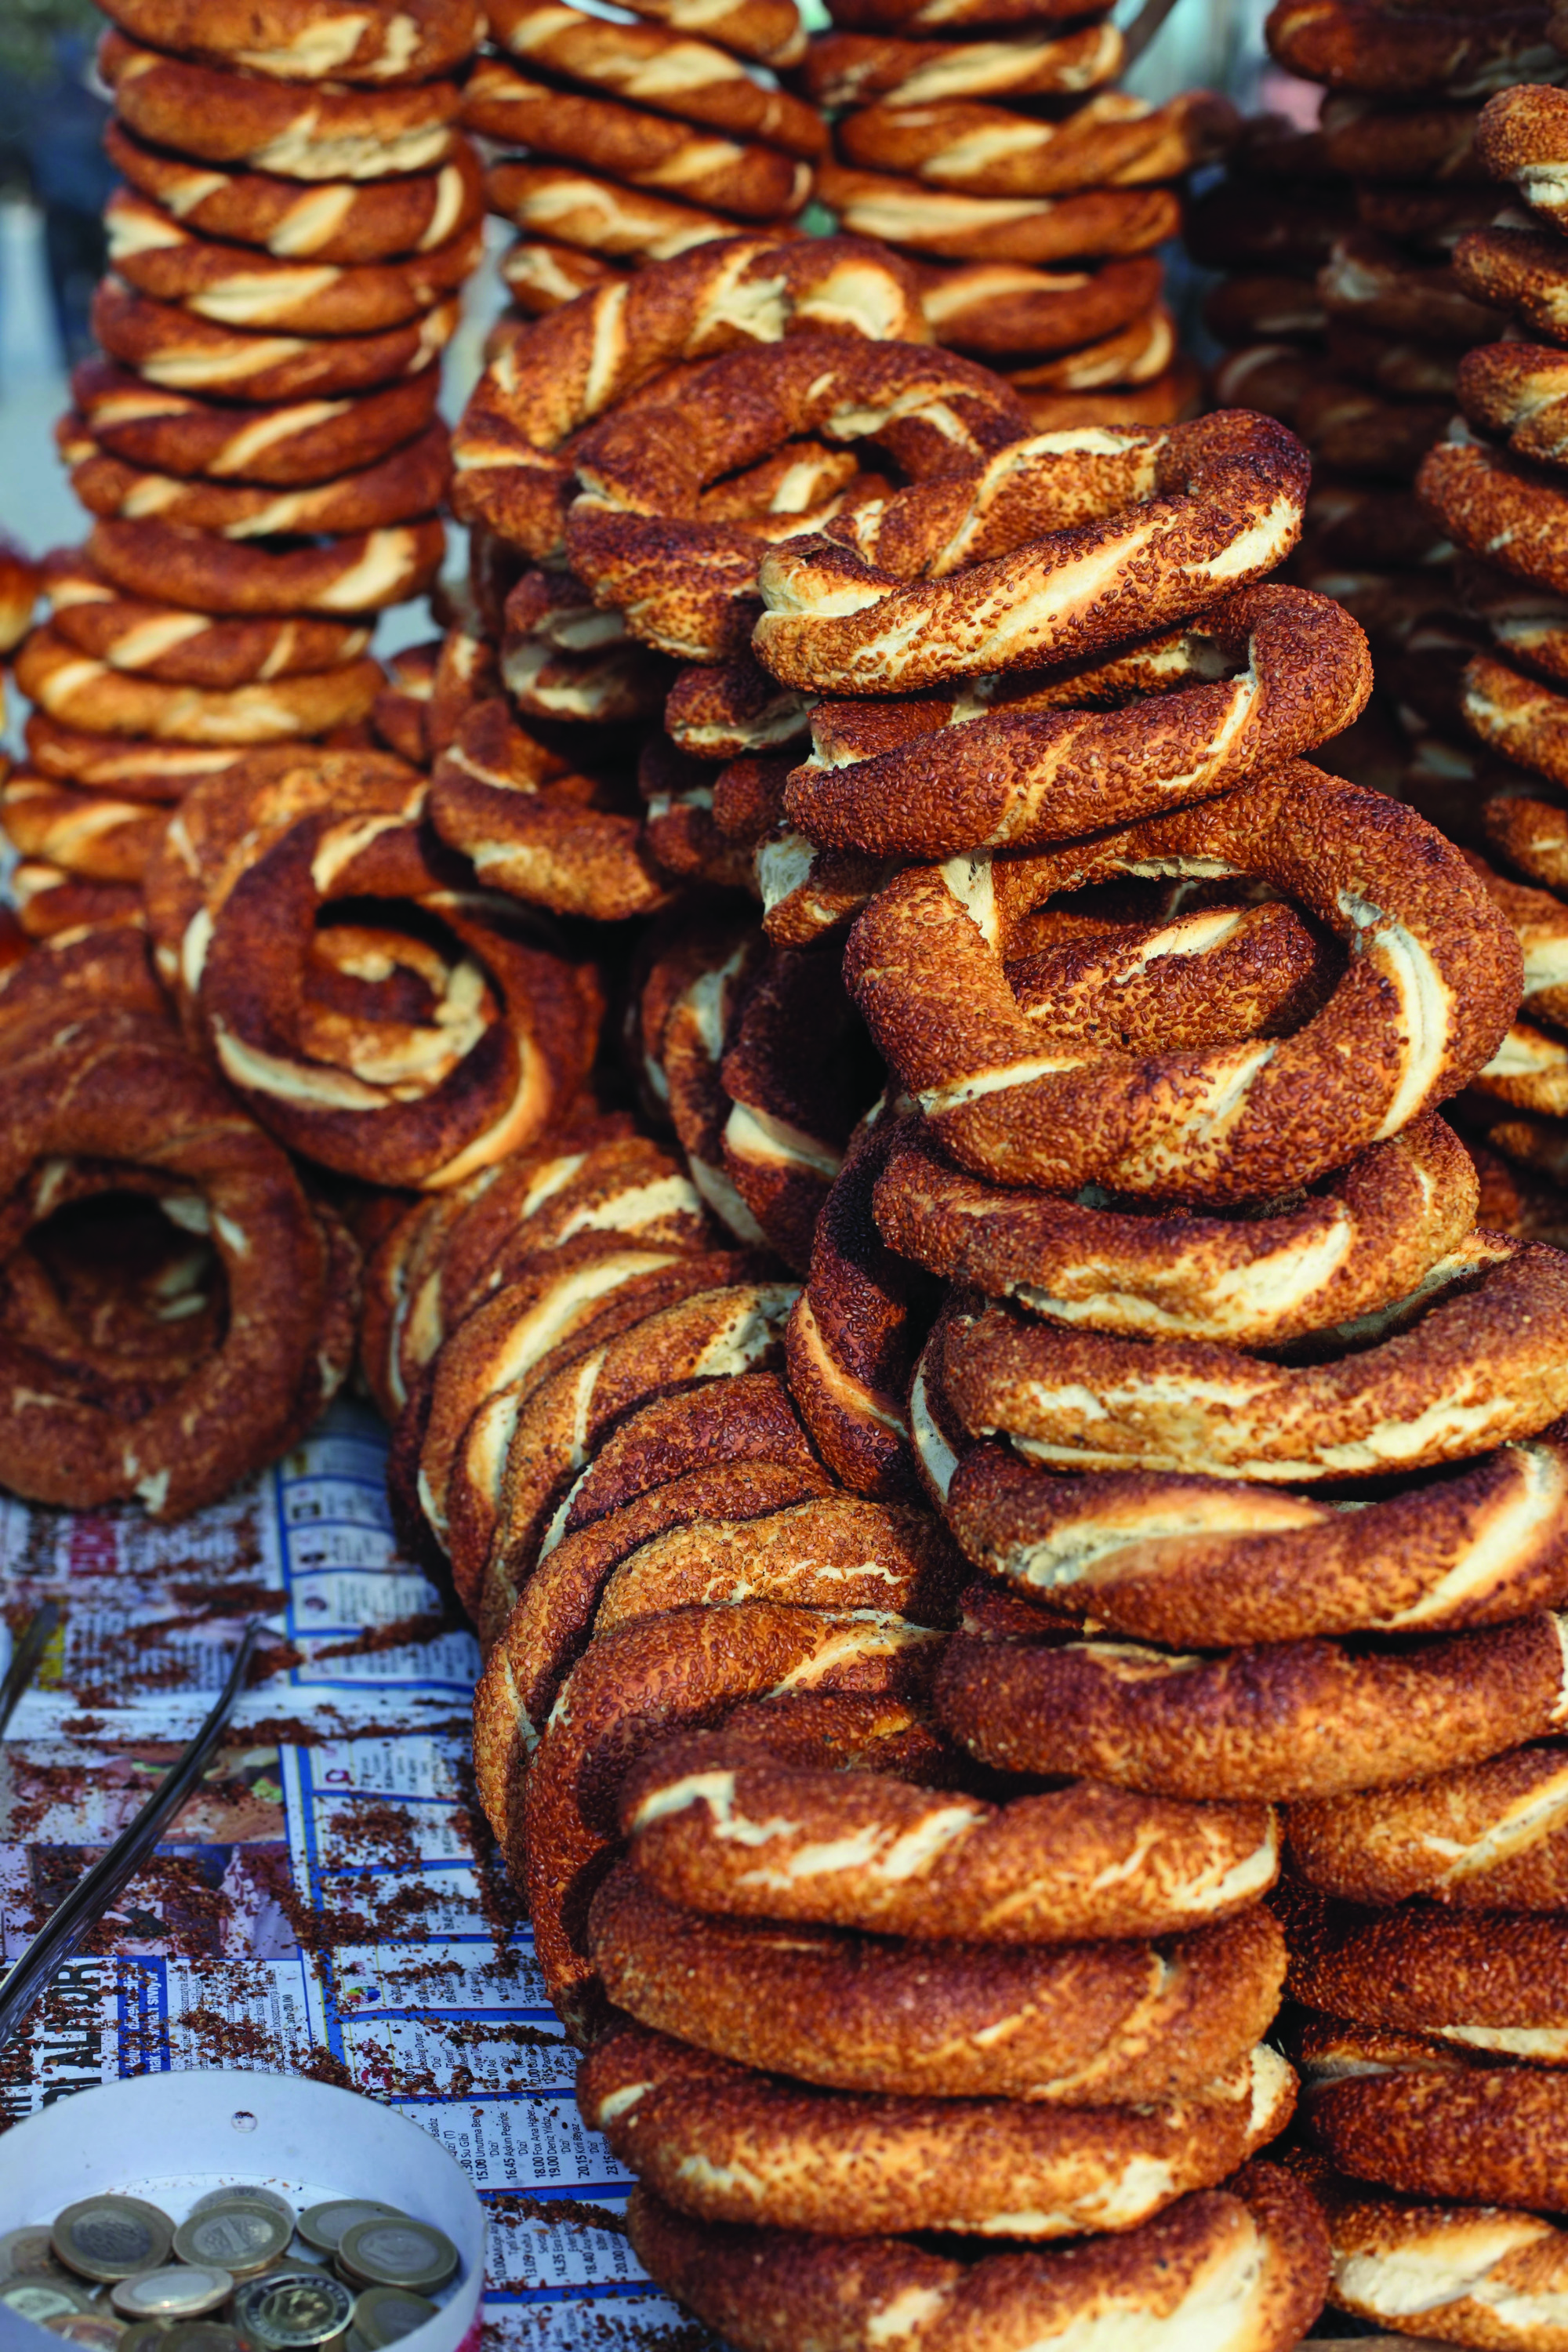 The 10 best Turkish street foods